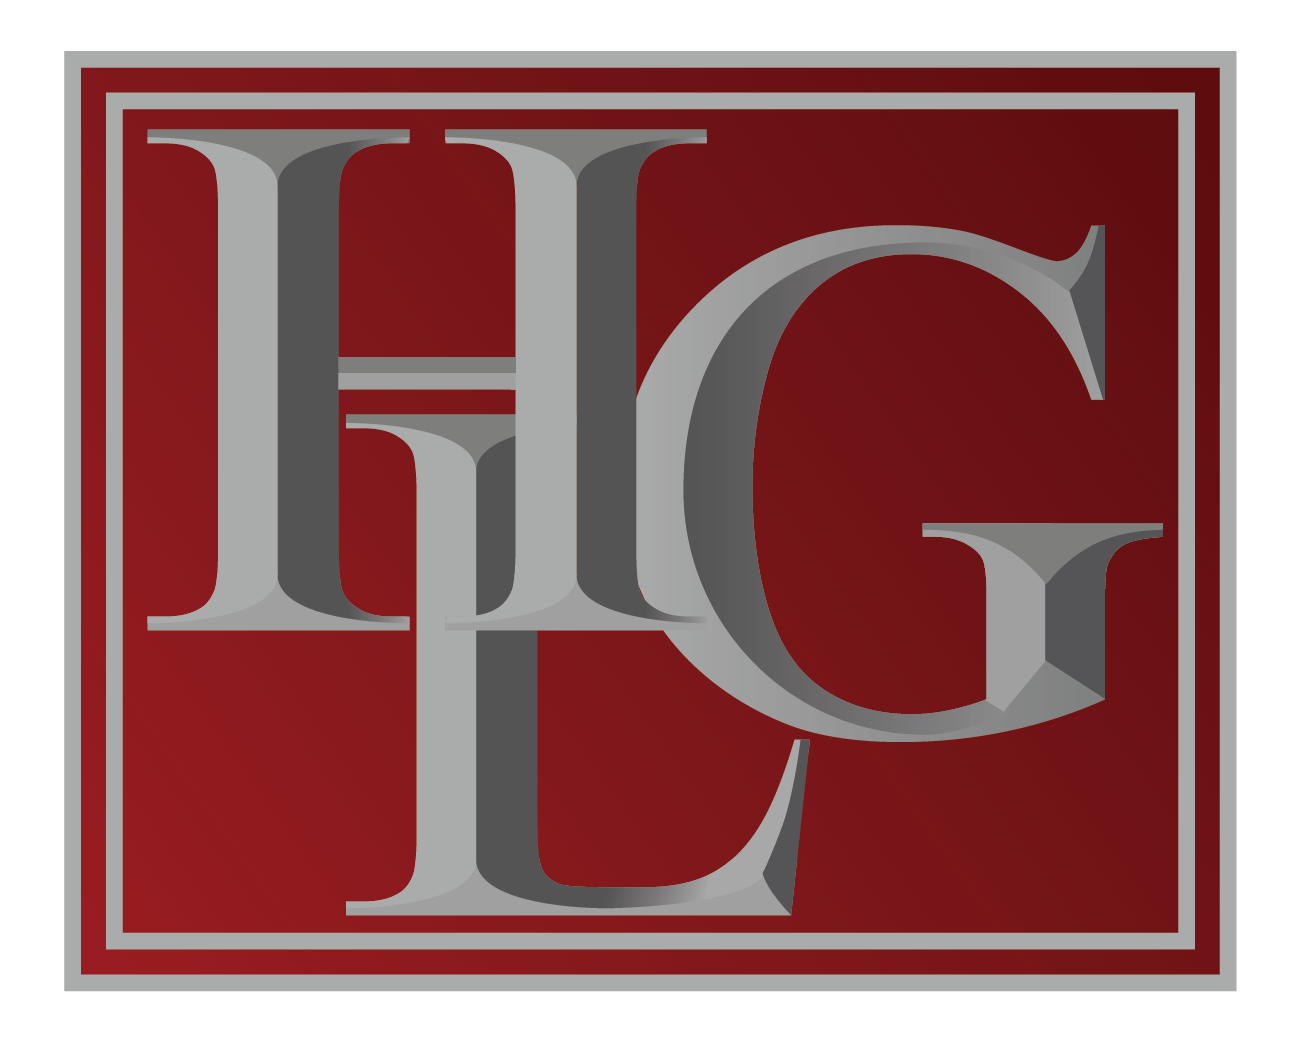 Holland Law Group